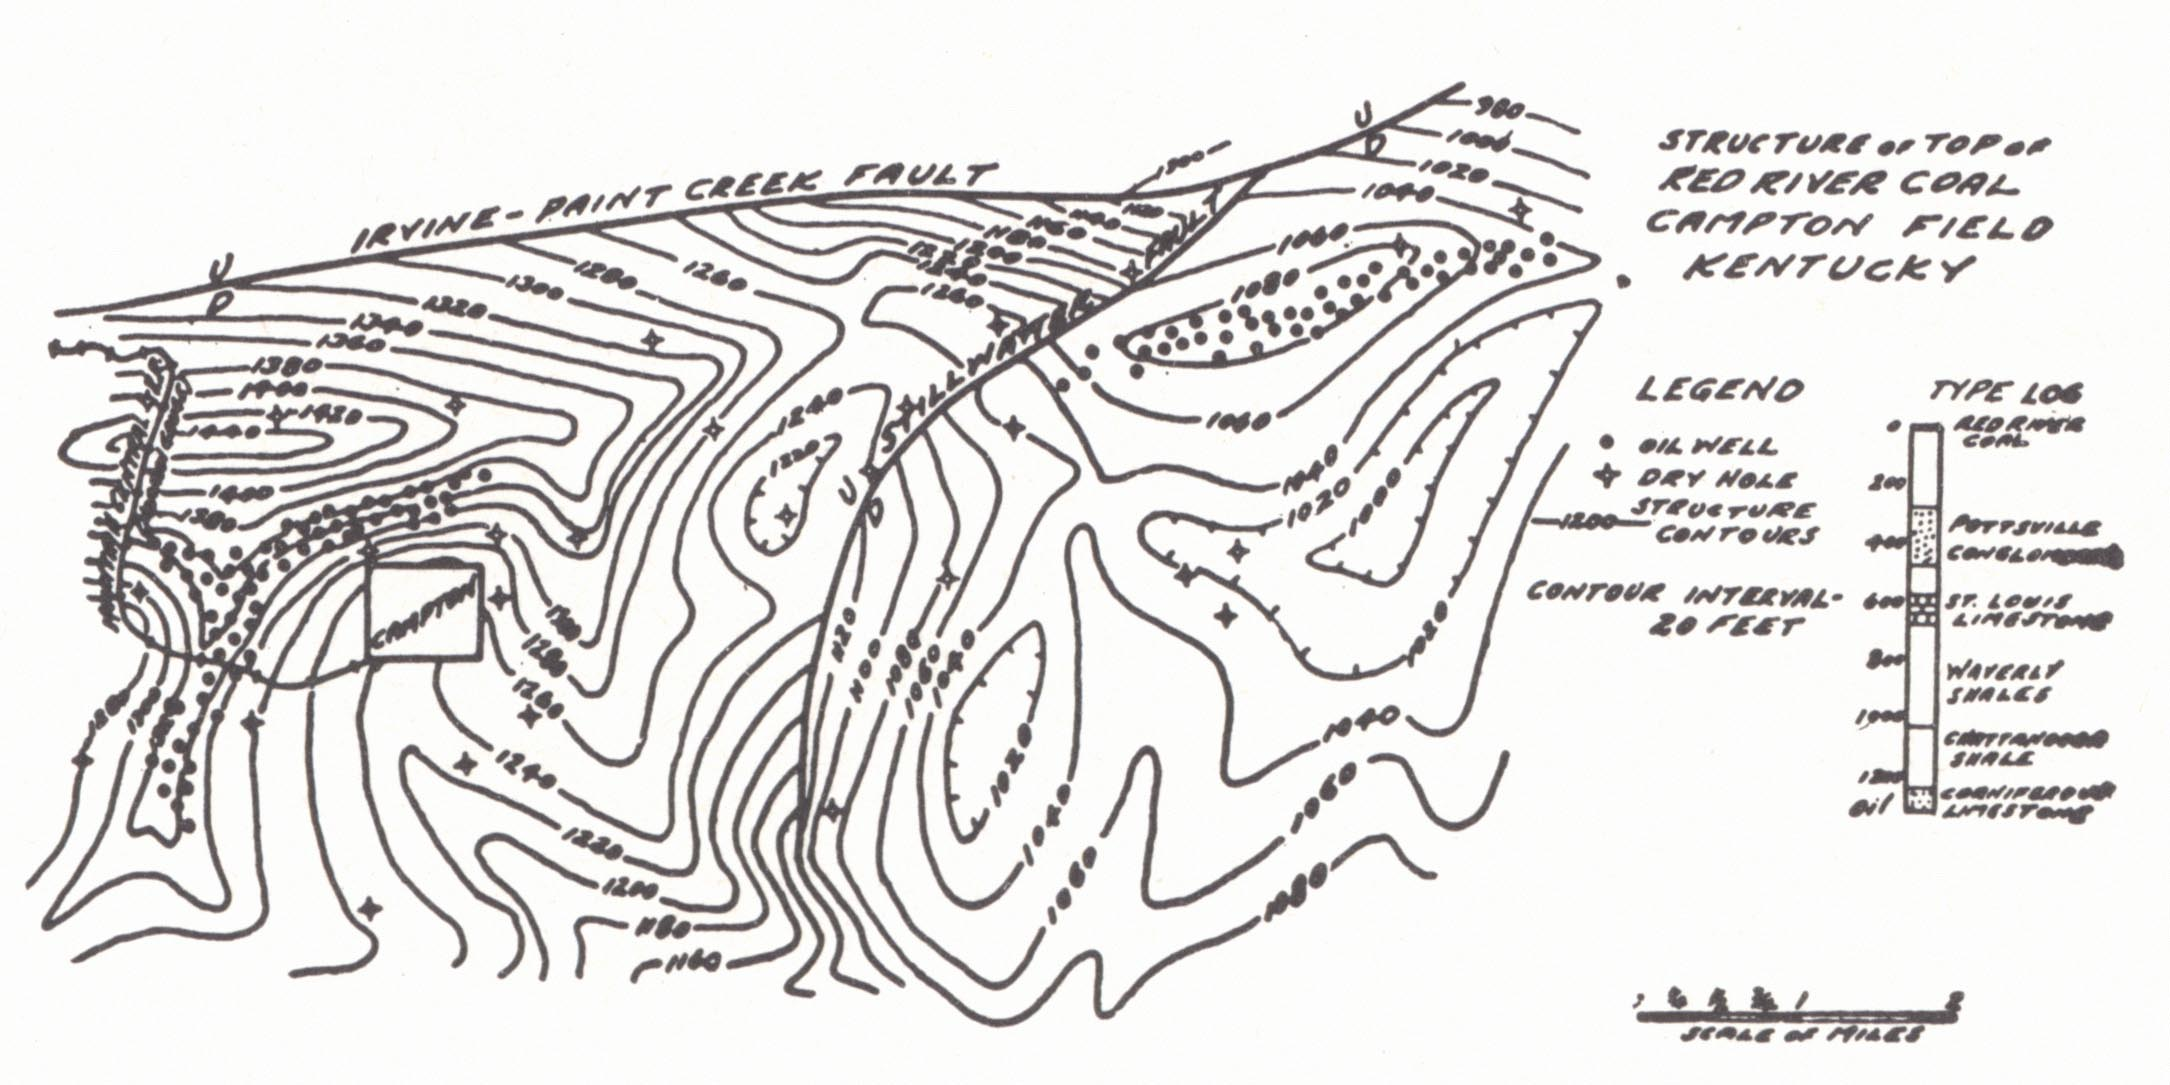 Geology Of Kentucky Chapter 23 Petroleum And Natural Gas Well Submersible Pump Moreover Wiring Diagram Fig 1 Structure Map A Portion Morgan County Showing The Caney Dome Irvine Paint Creek Fault Minor Structures Robinson Hudnall 1925